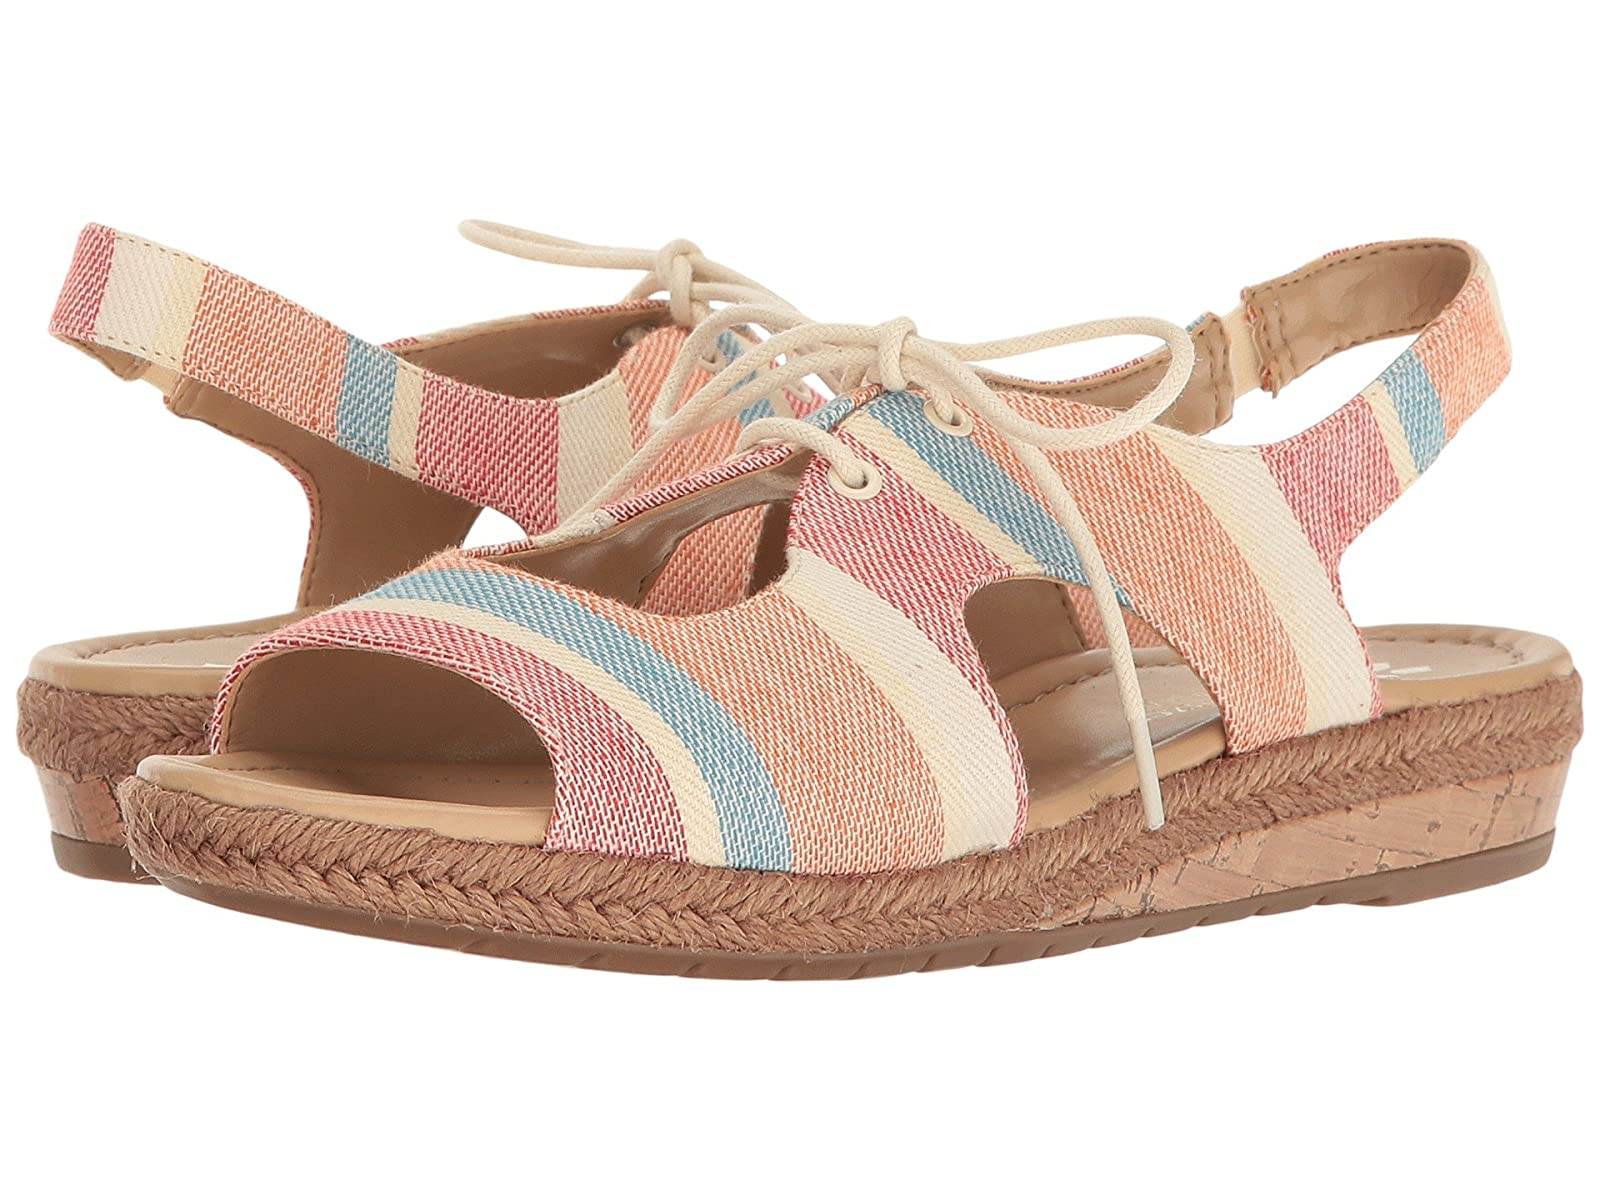 Naturalizer ReillyCheap and distinctive eye-catching shoes